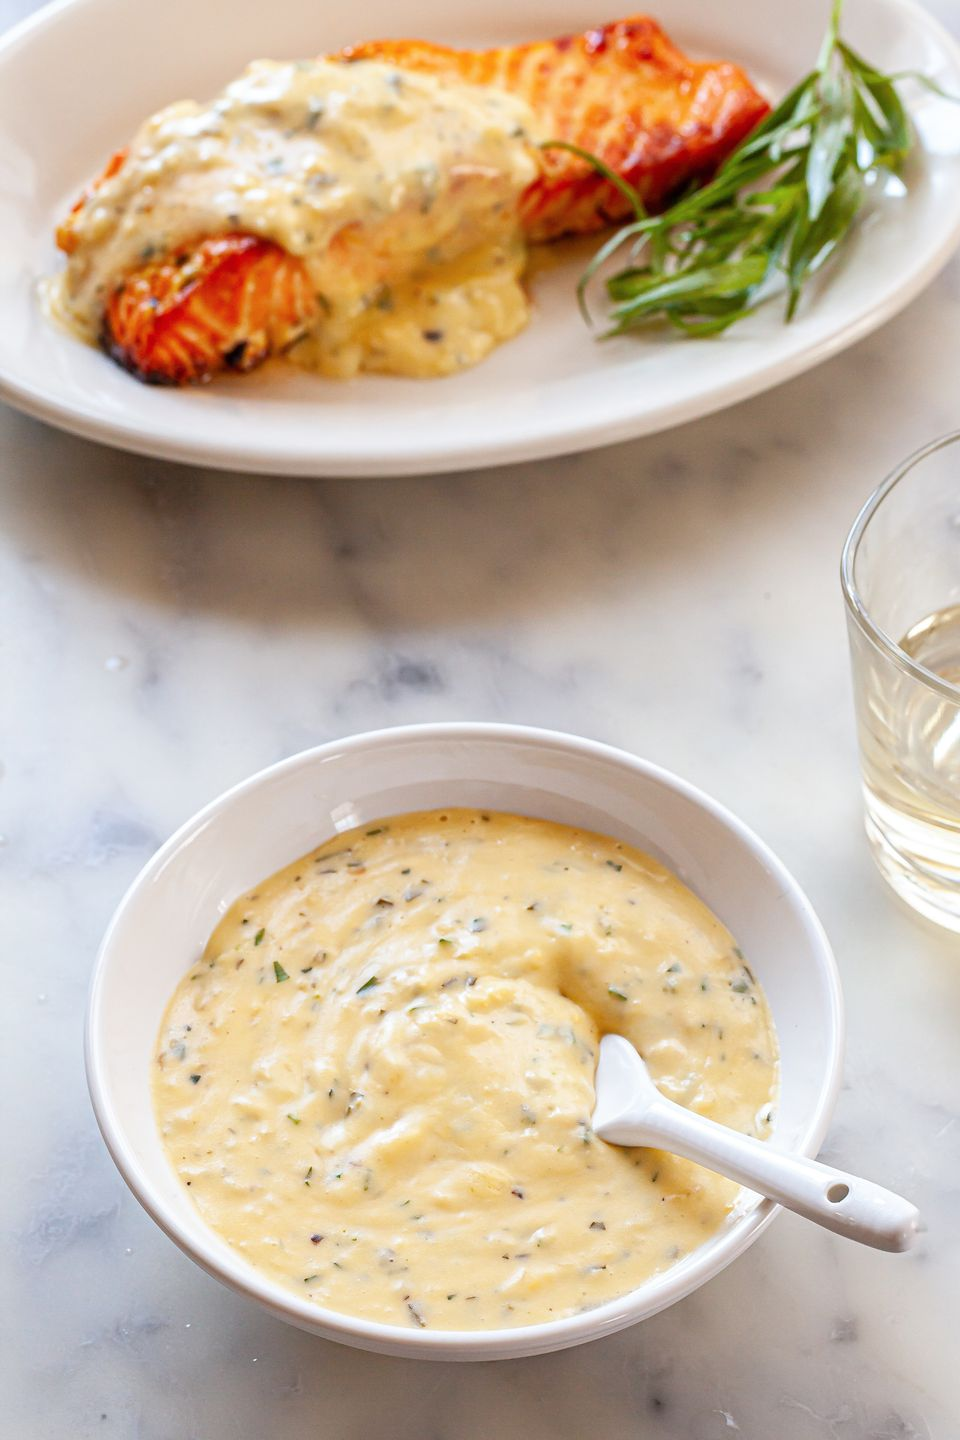 Classic mother sauce: béarnaise in a bowl with a plate of salmon and sauce set behind the bowl.